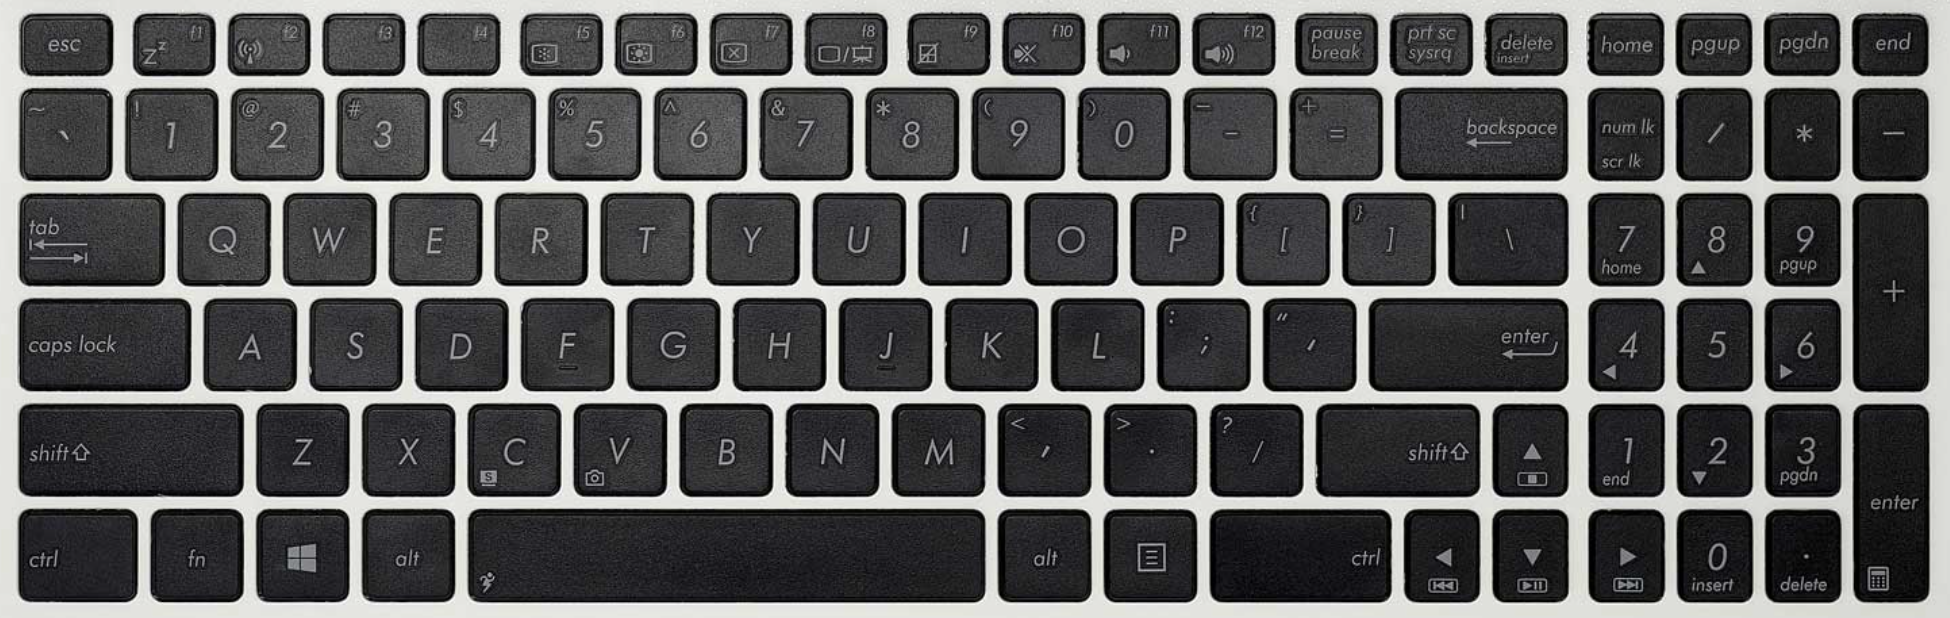 Asus S550X keyboard key replacement